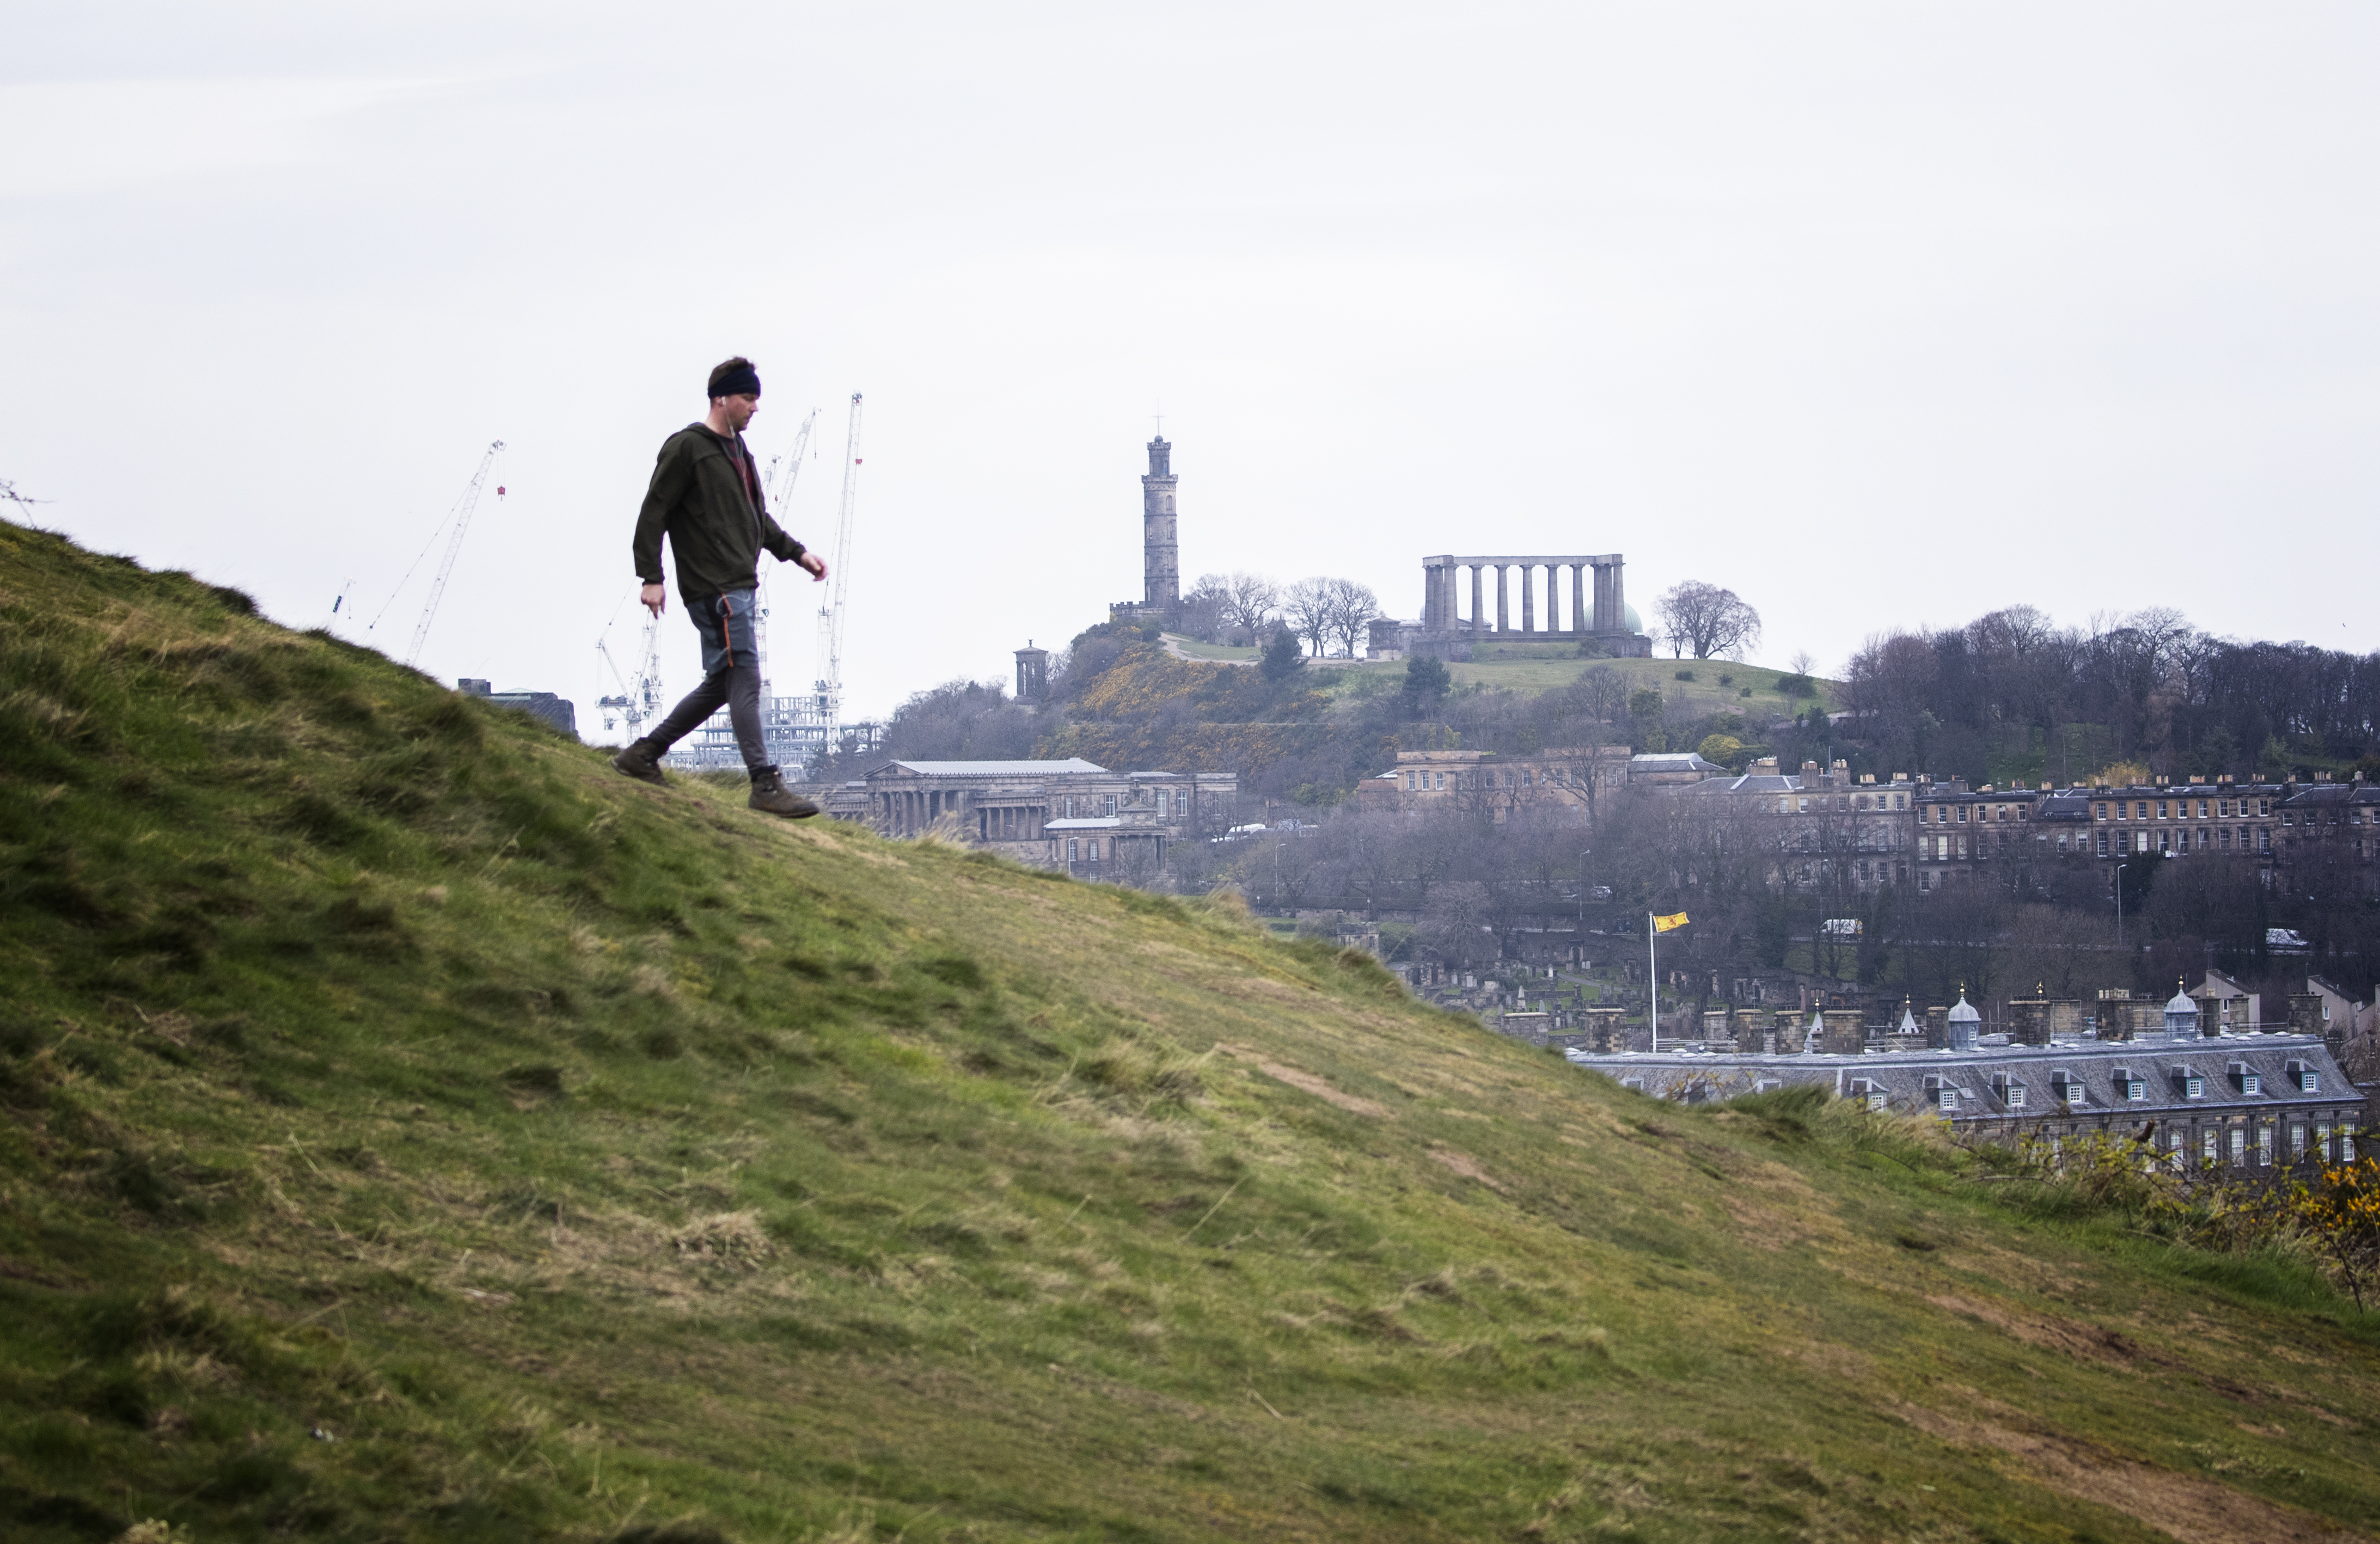 A man walks in Holyrood Park, Edinburgh, the day after Prime Minister Boris Johnson put the UK in lockdown to help curb the spread of the coronavirus.